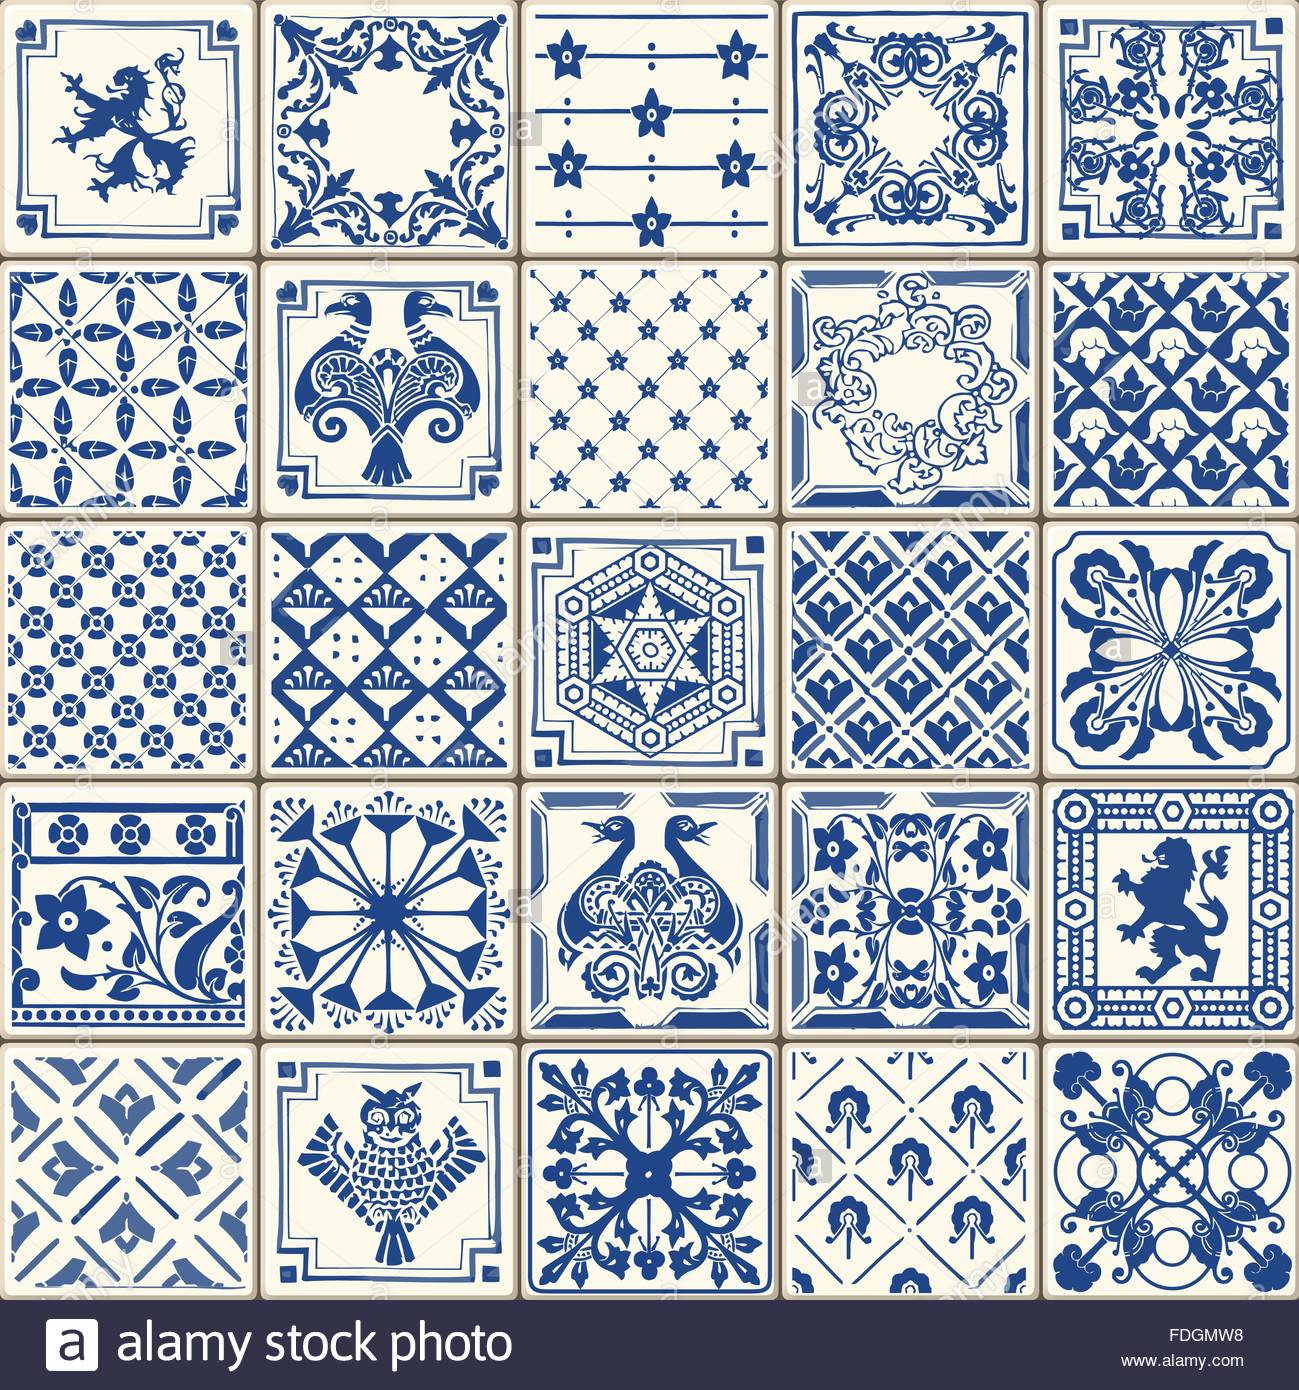 Indigo Blue Tiles Floor Ornament Collection. Gorgeous Seamless Stock ...